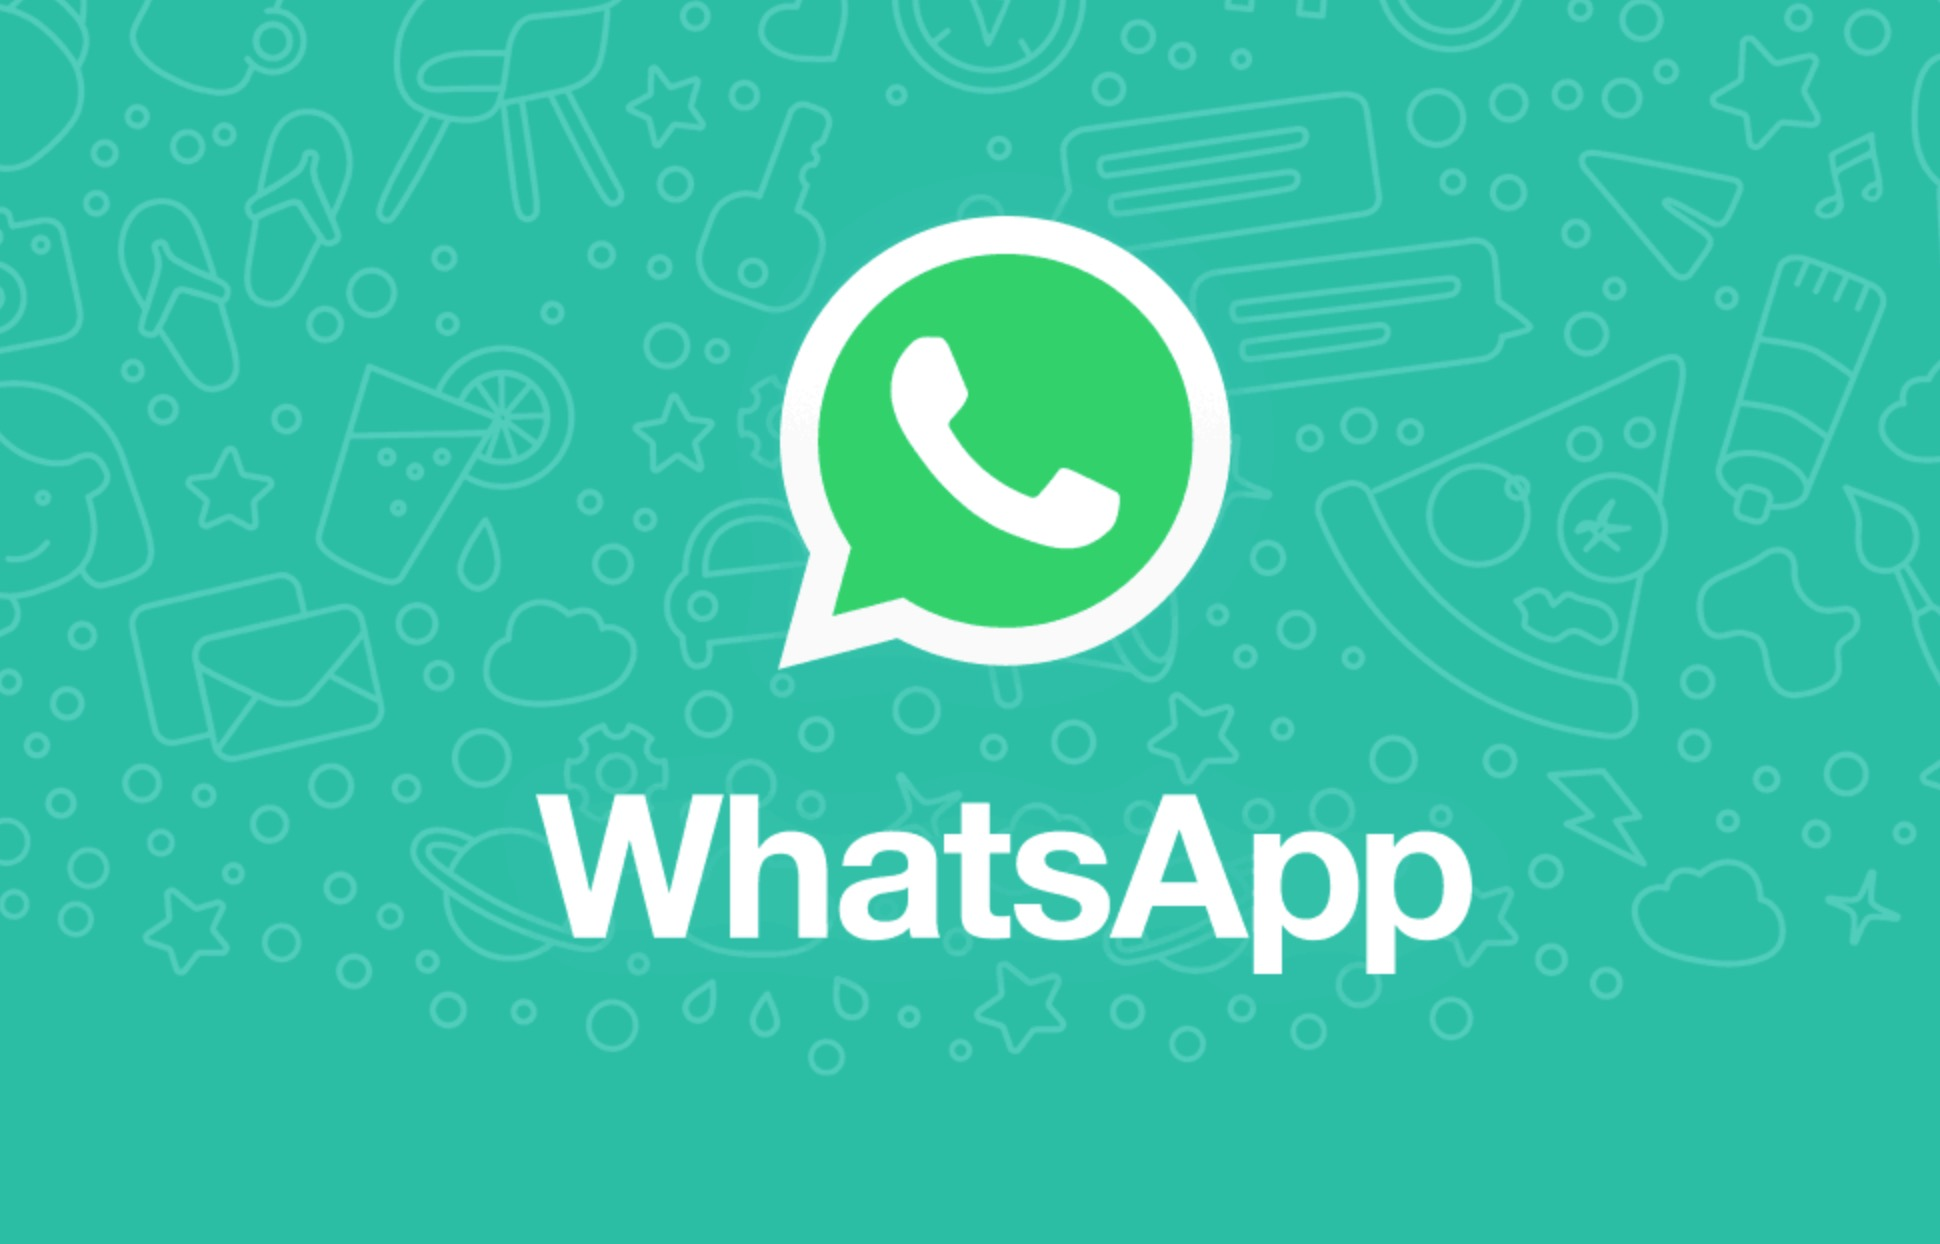 Archiviare chat WhatsApp